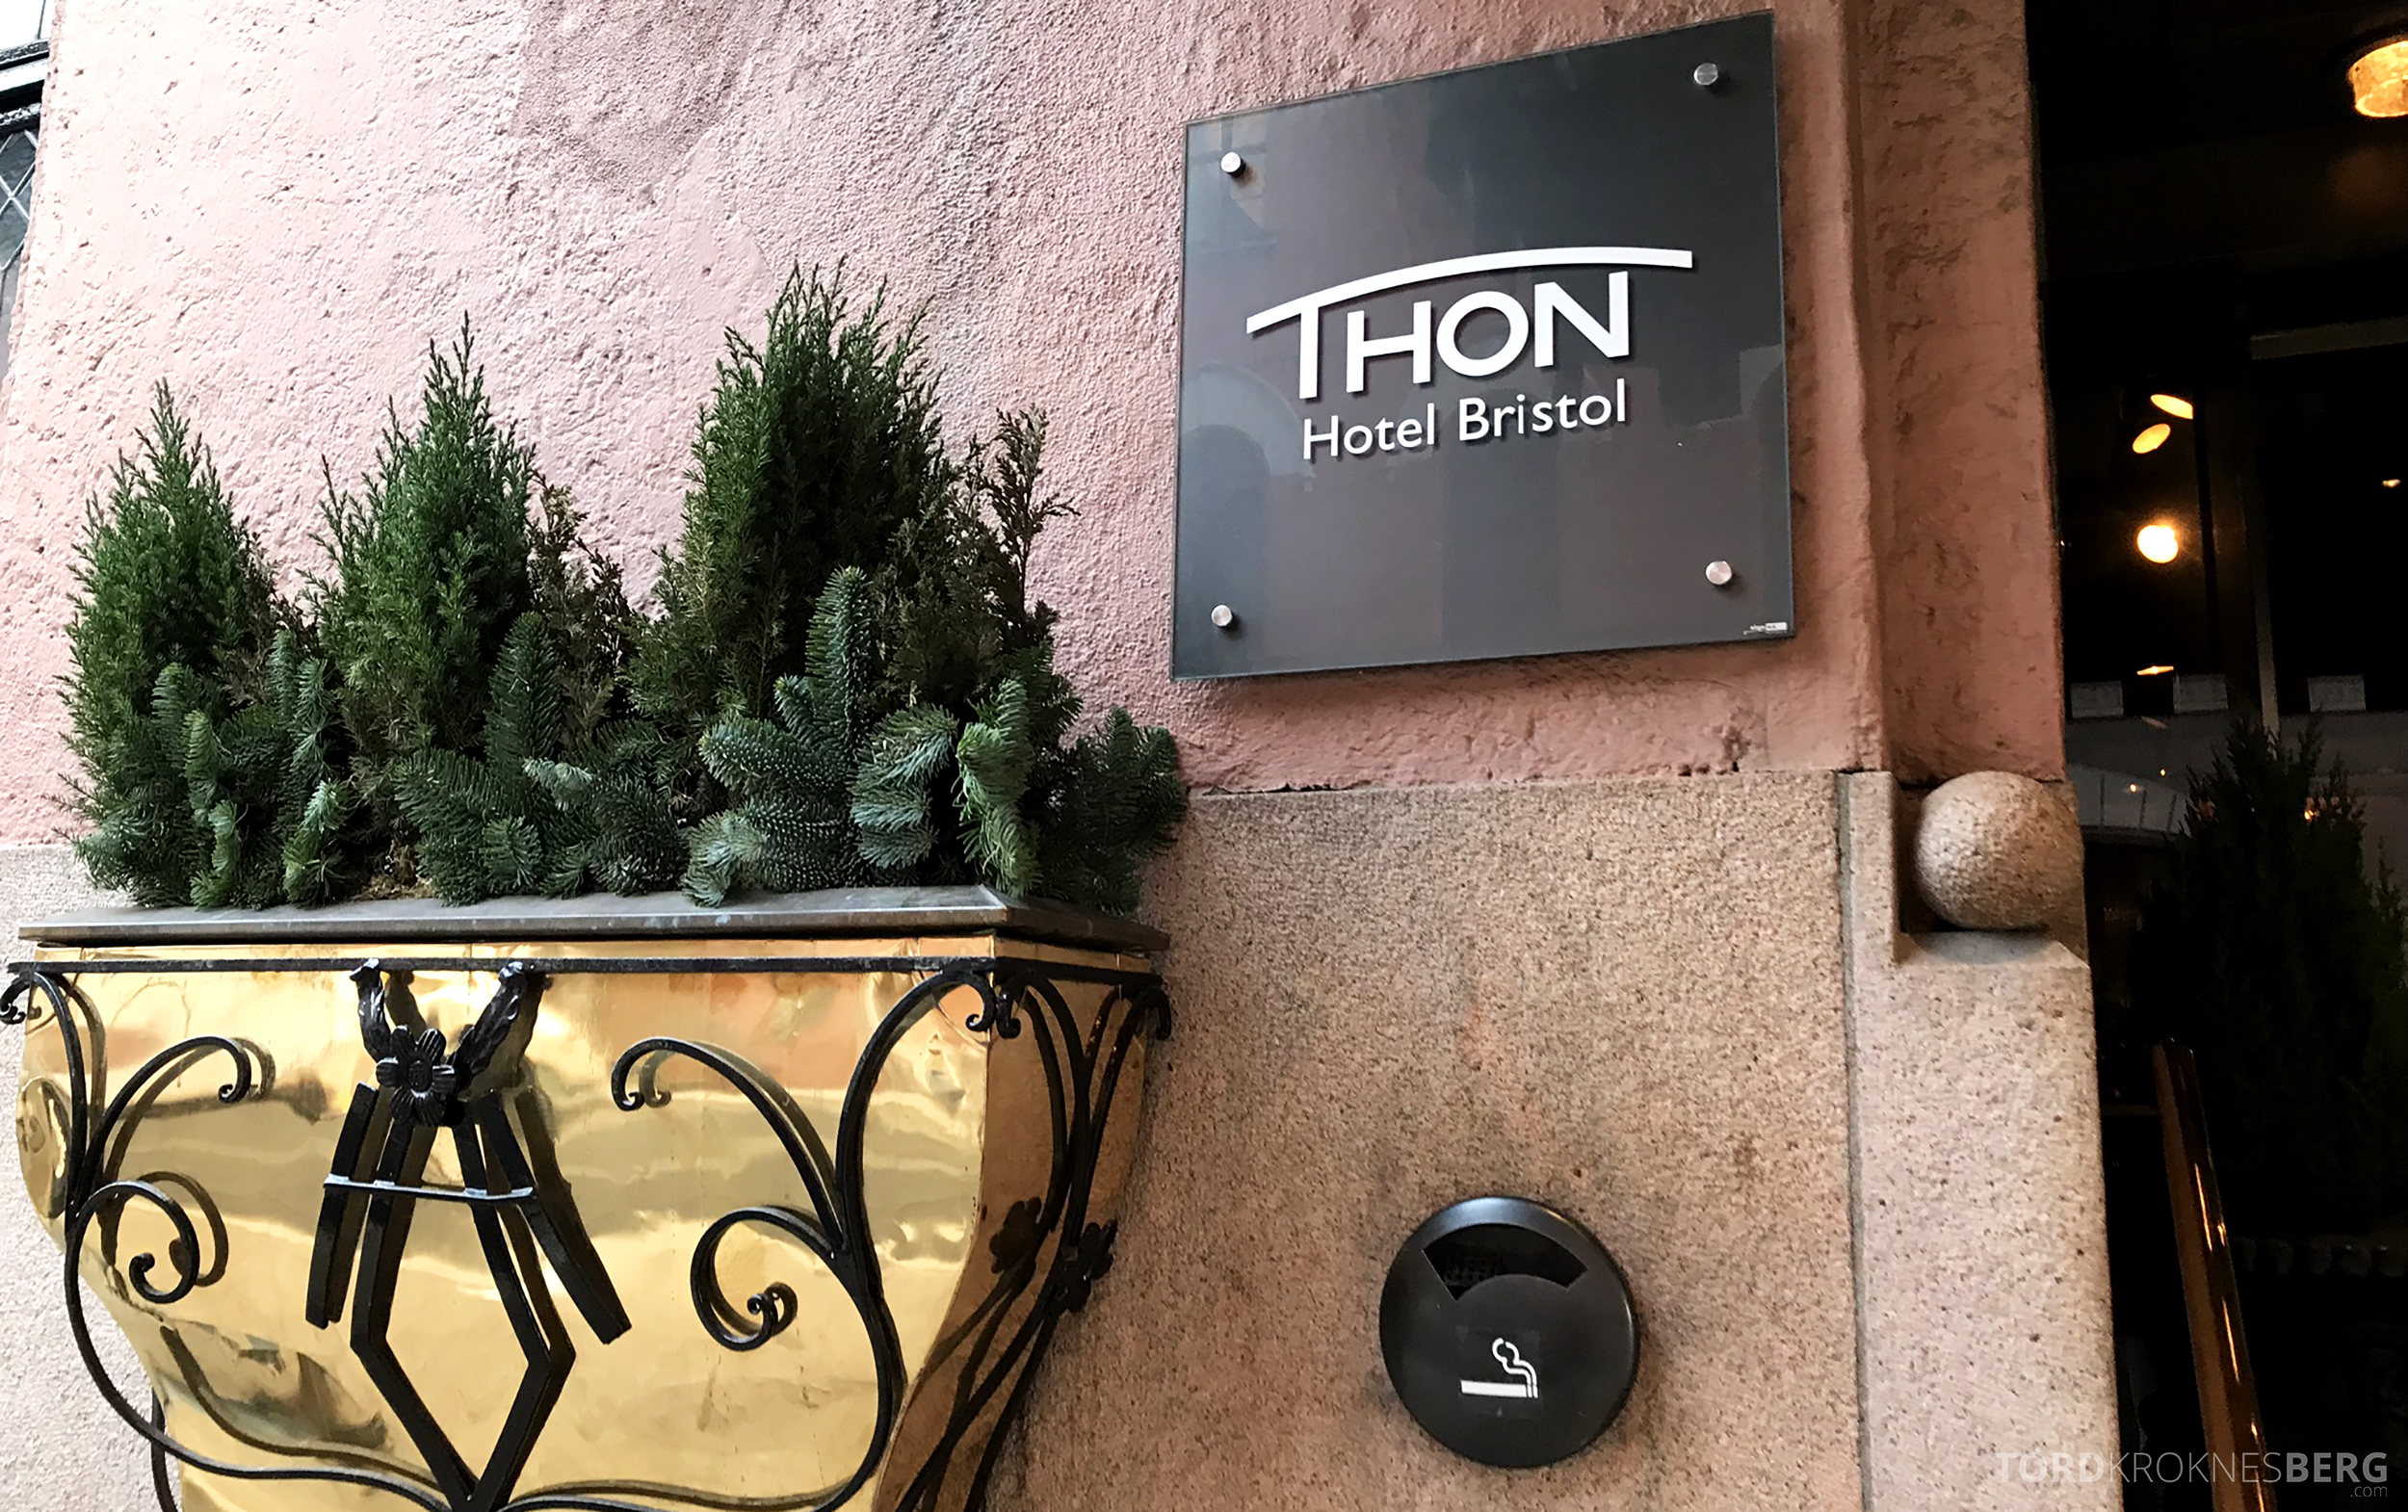 Thon Hotel Bristol Oslo inngang